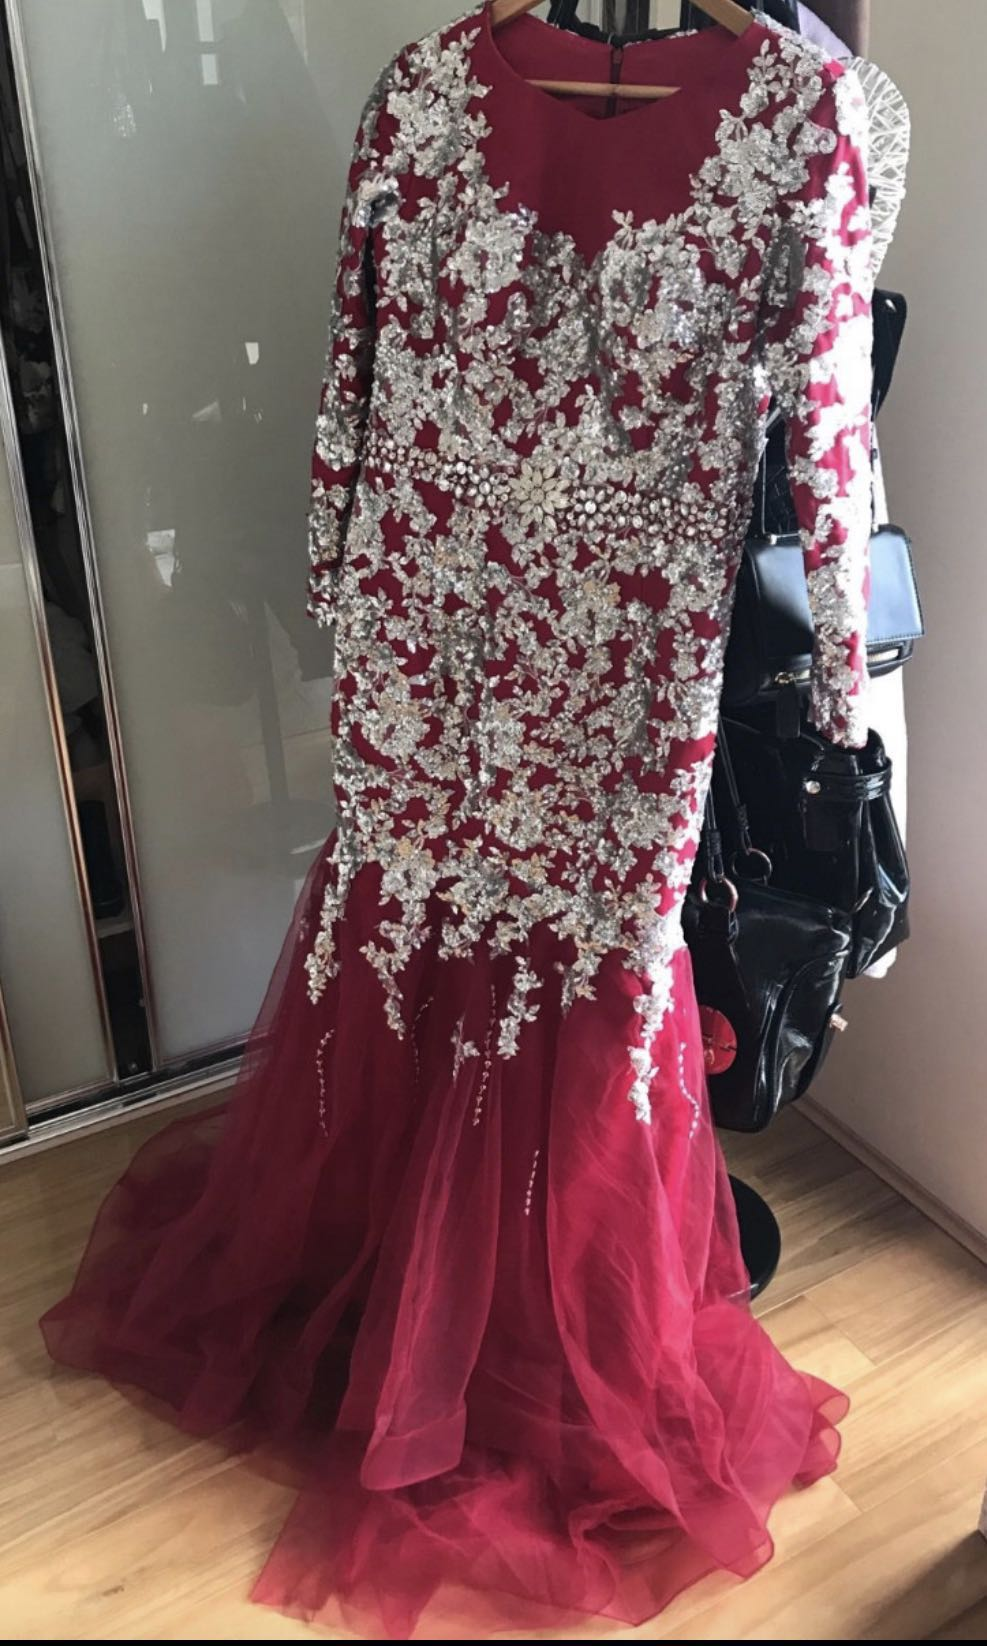 New burgundy sequin evening dress prom/ ball/ formal